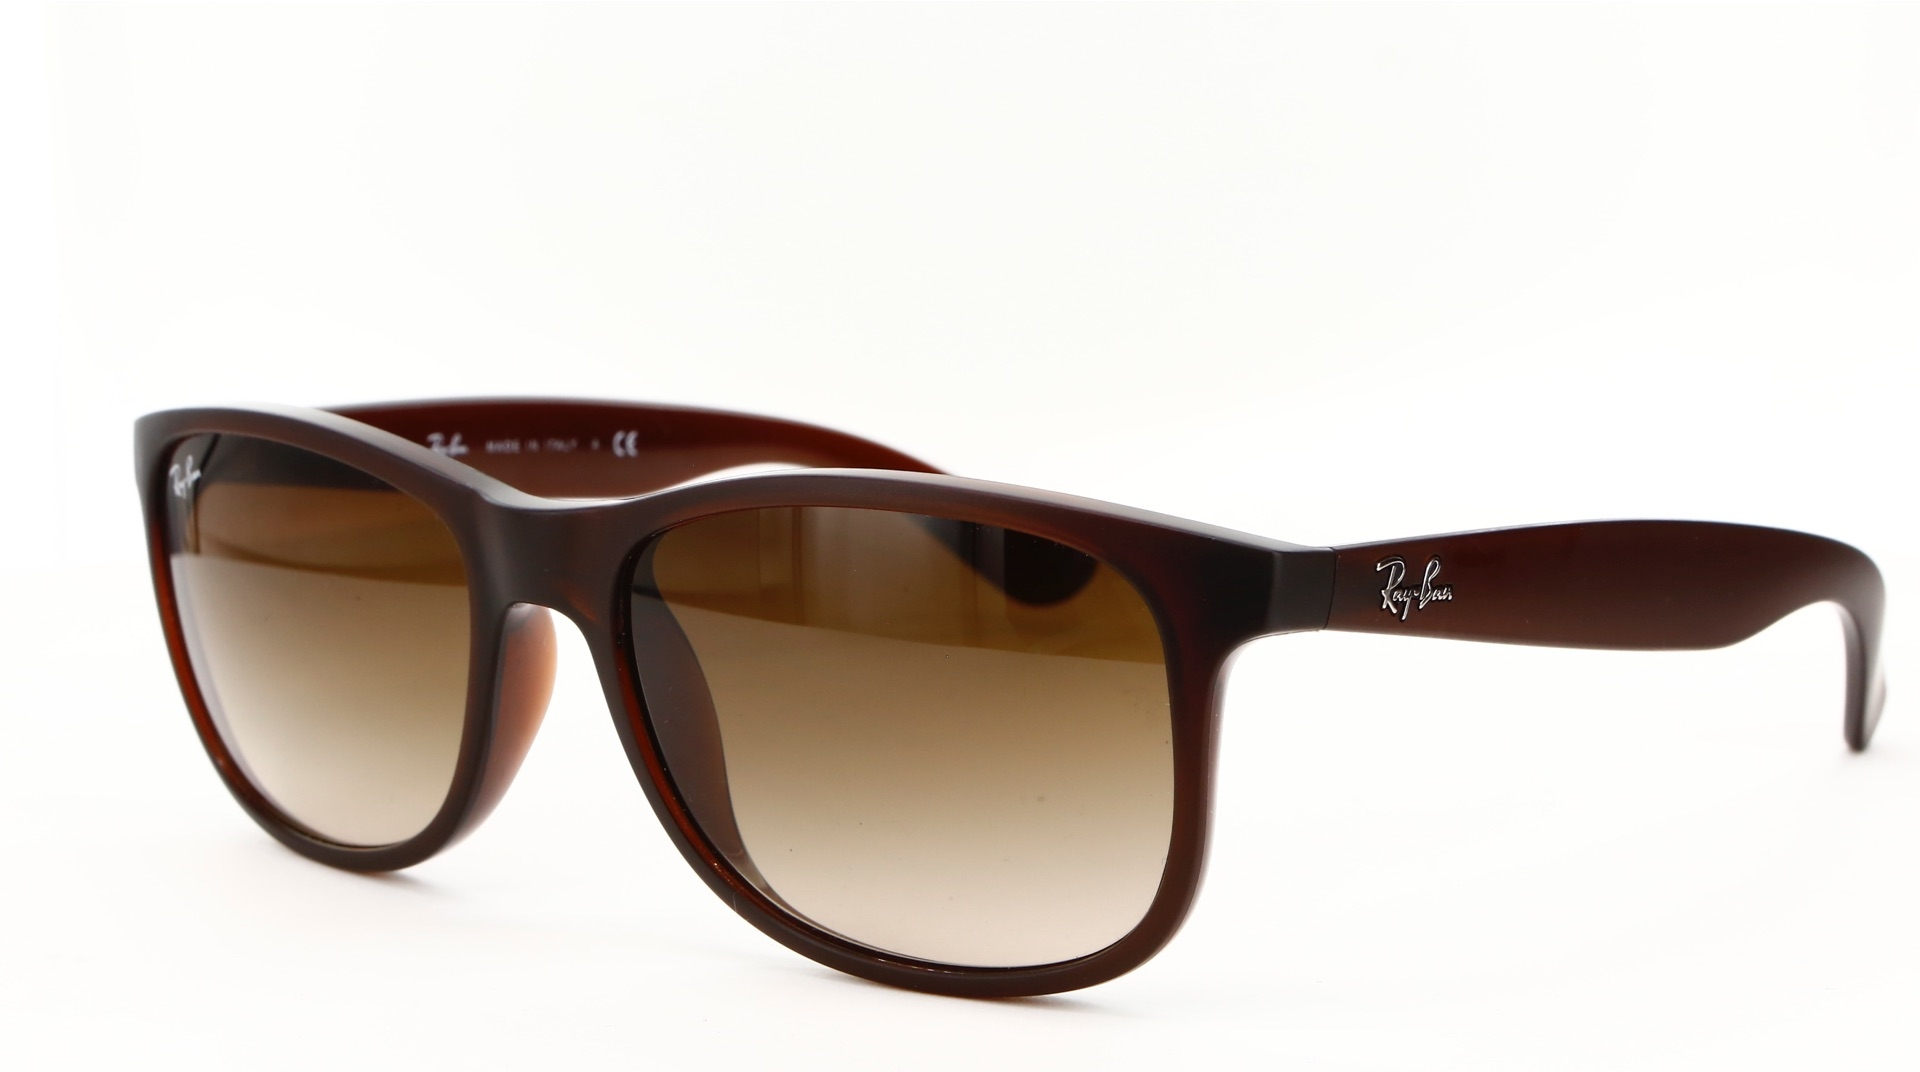 Ray-Ban - ref: 72388